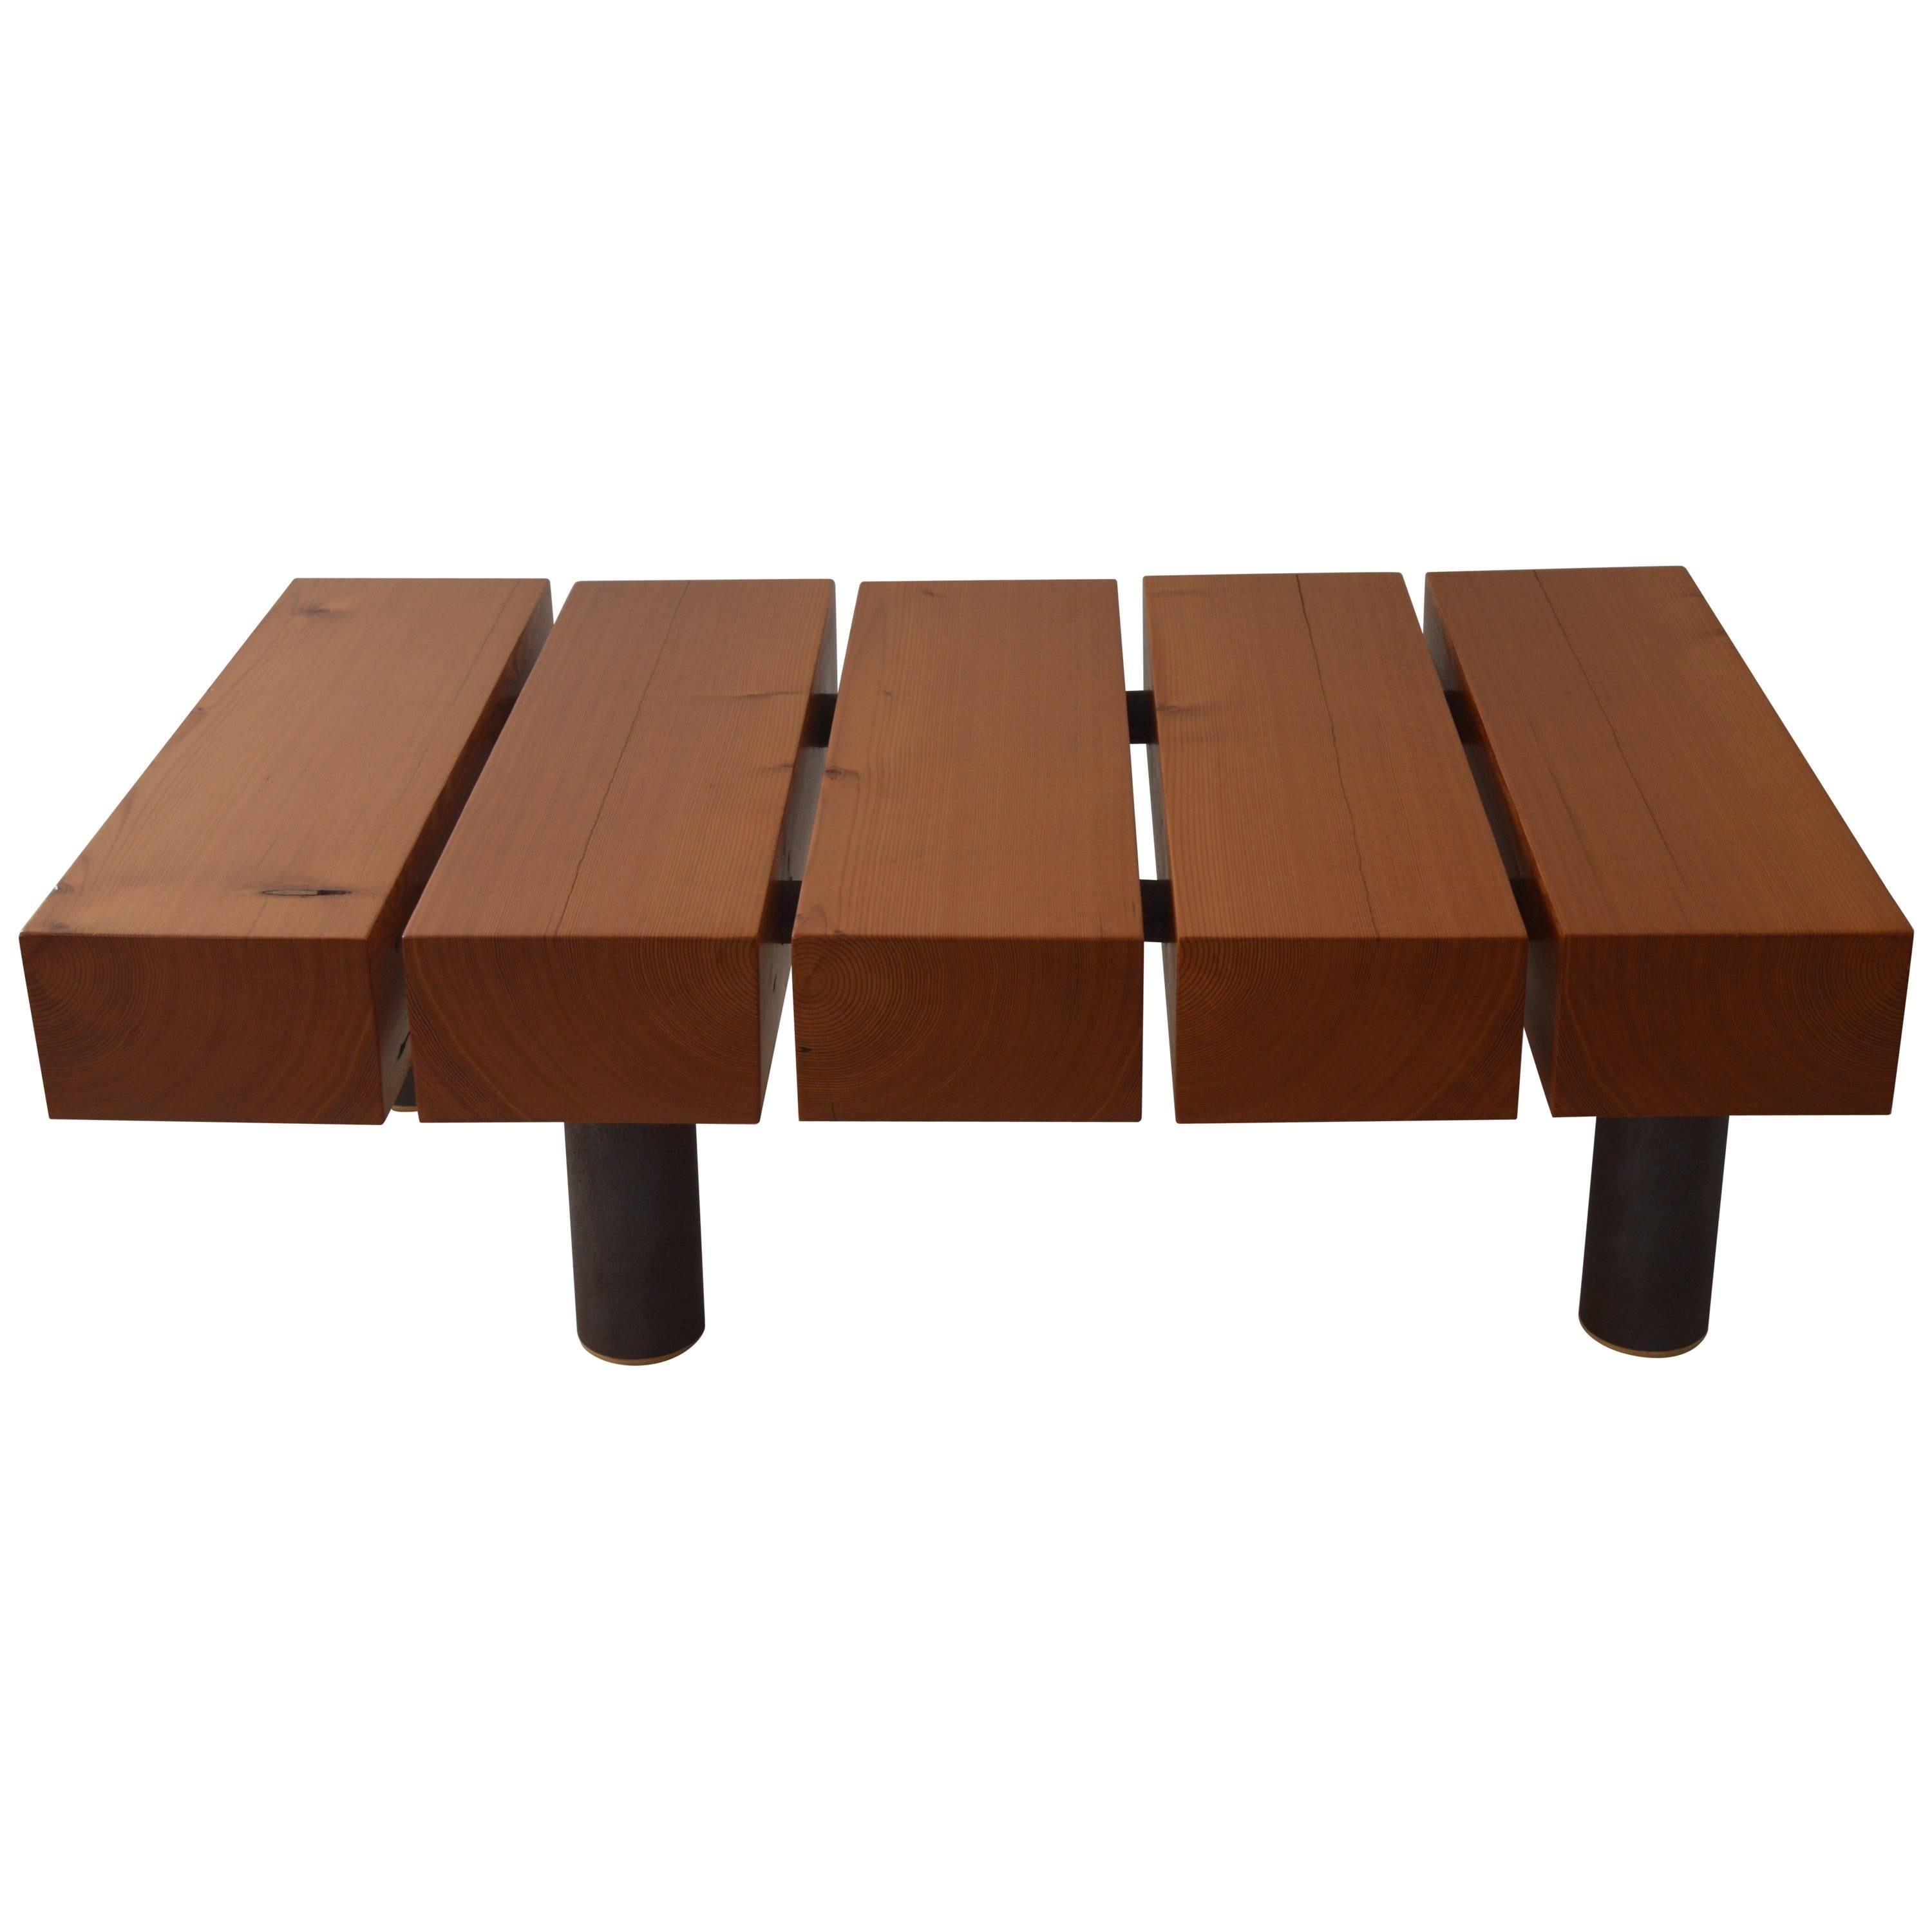 Contemporary Minimalist Wood and Patinated Steel Coffee Table by Scott Gordon